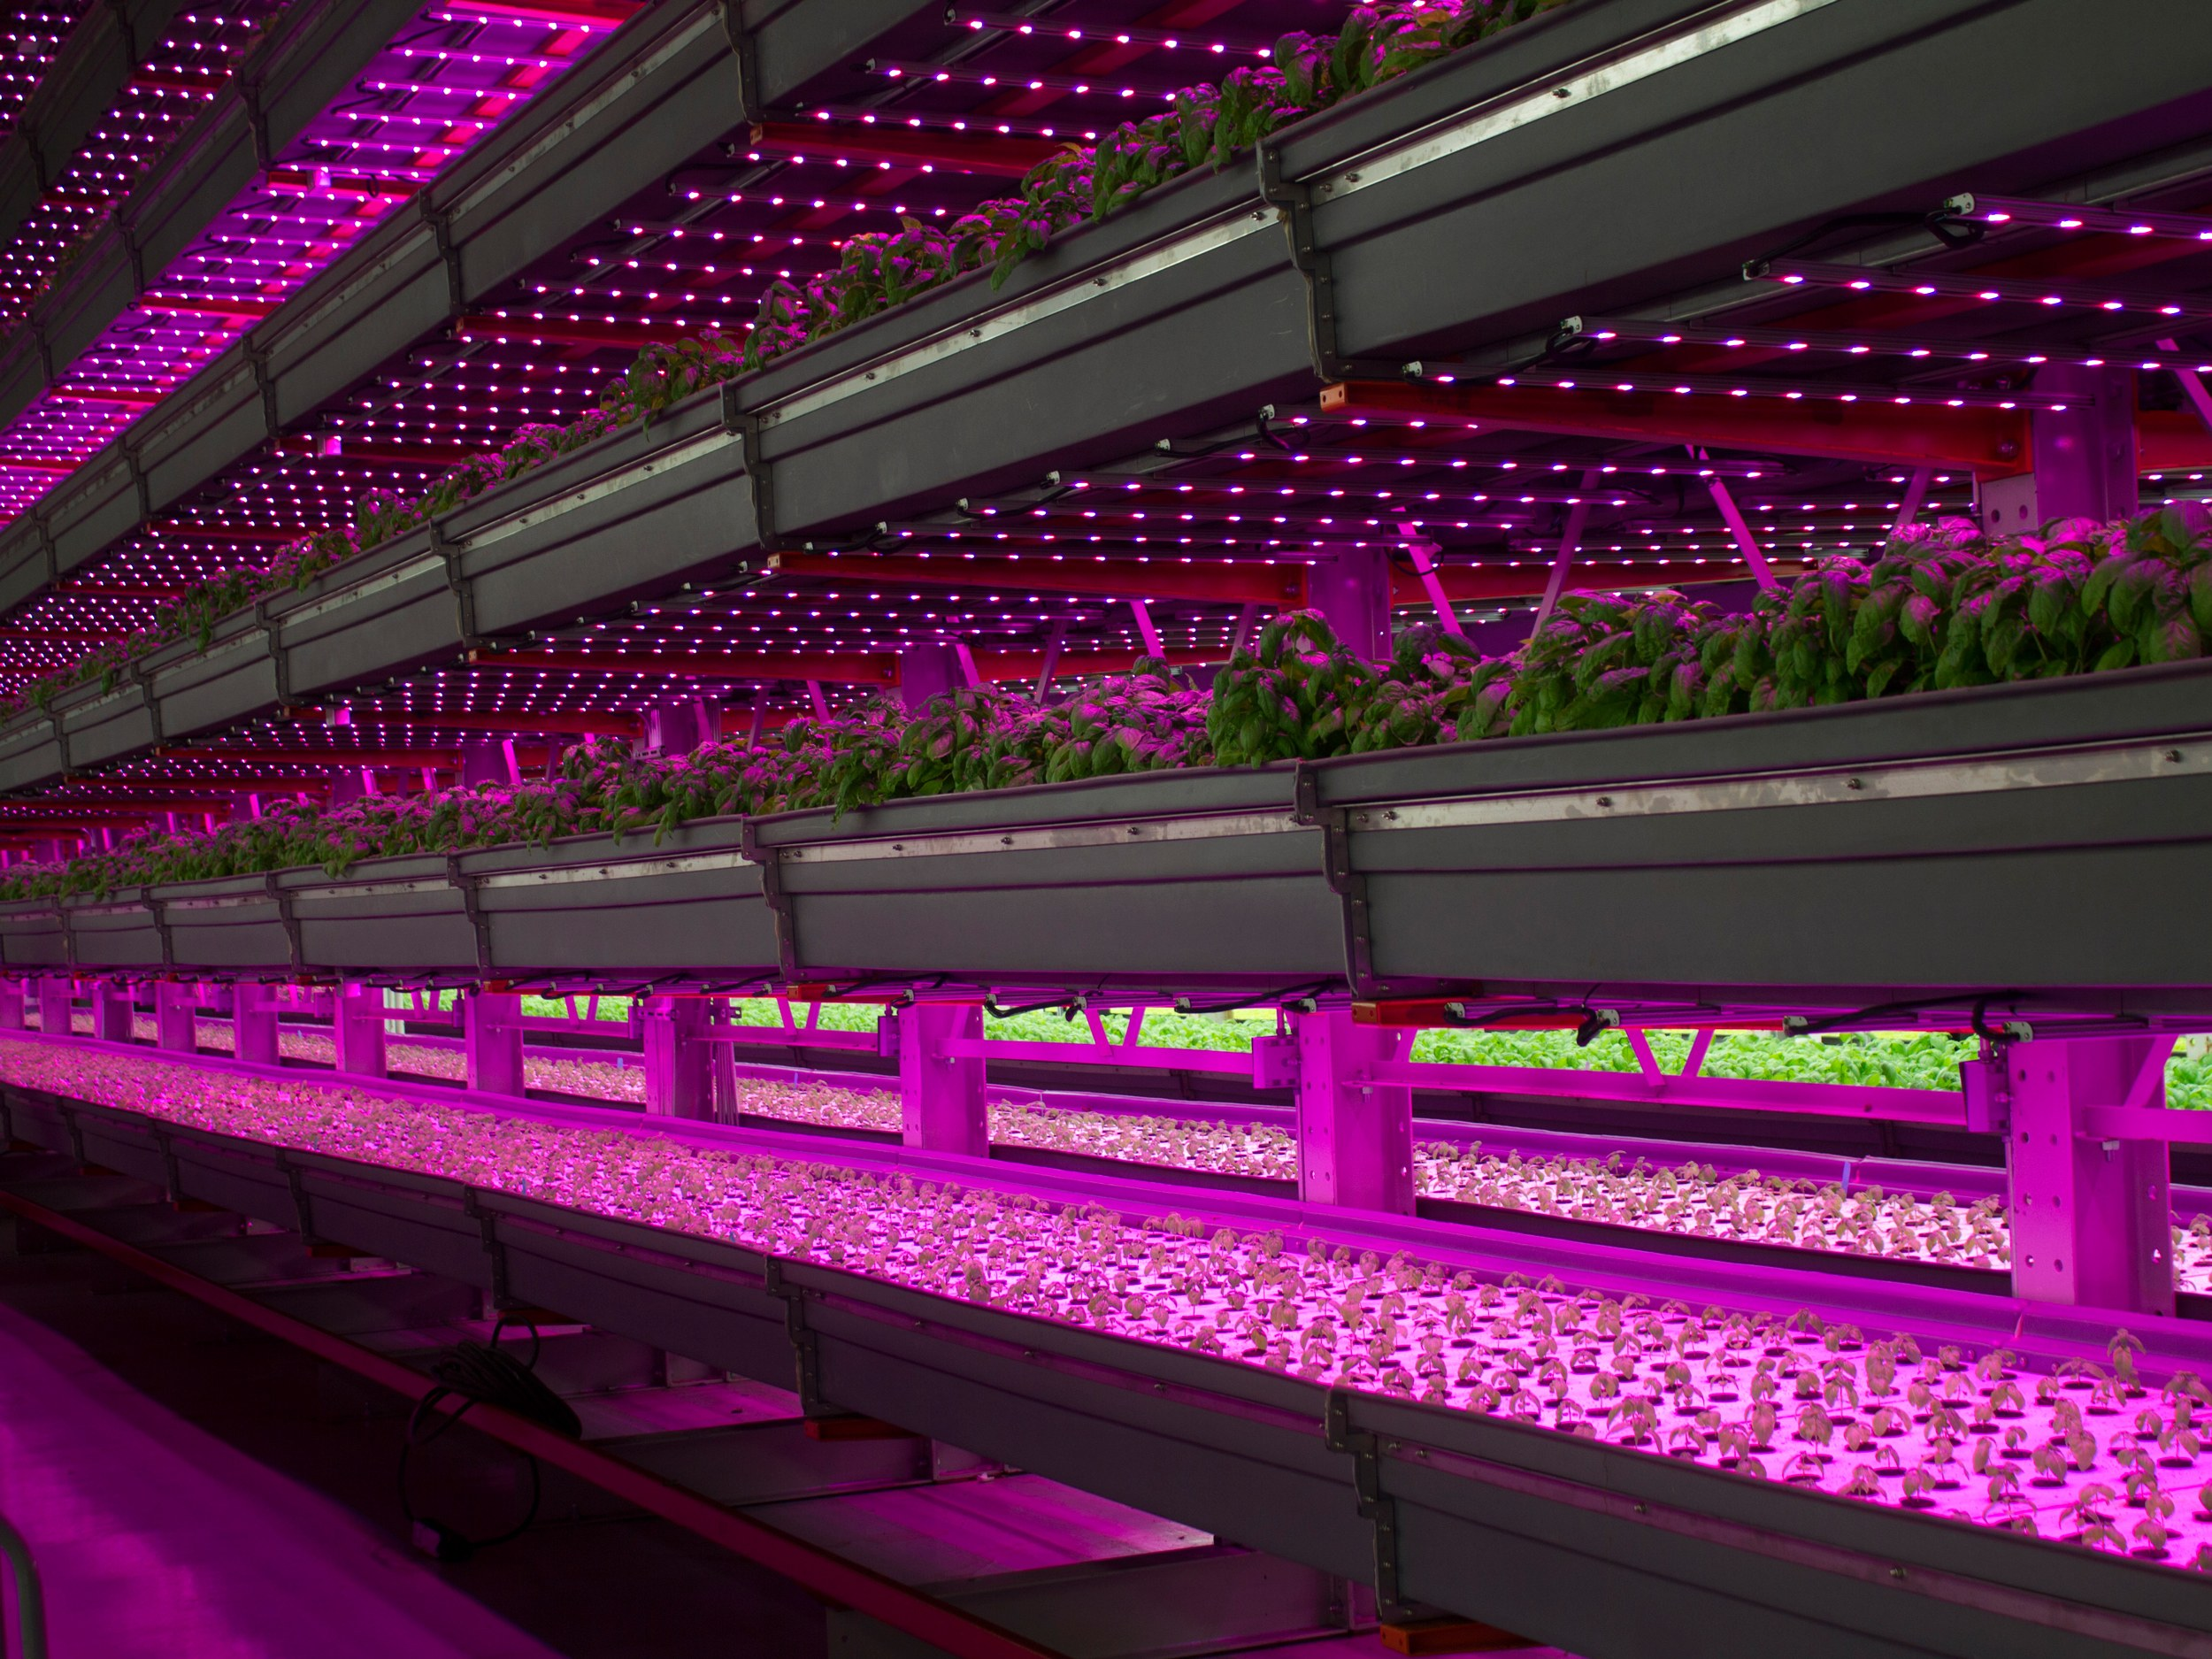 Illumitex grow lights in a vertical farm. The company is developing high-resolution imaging technology that will integrate with sensors and their lights to give a fuller picture of the growing environment.